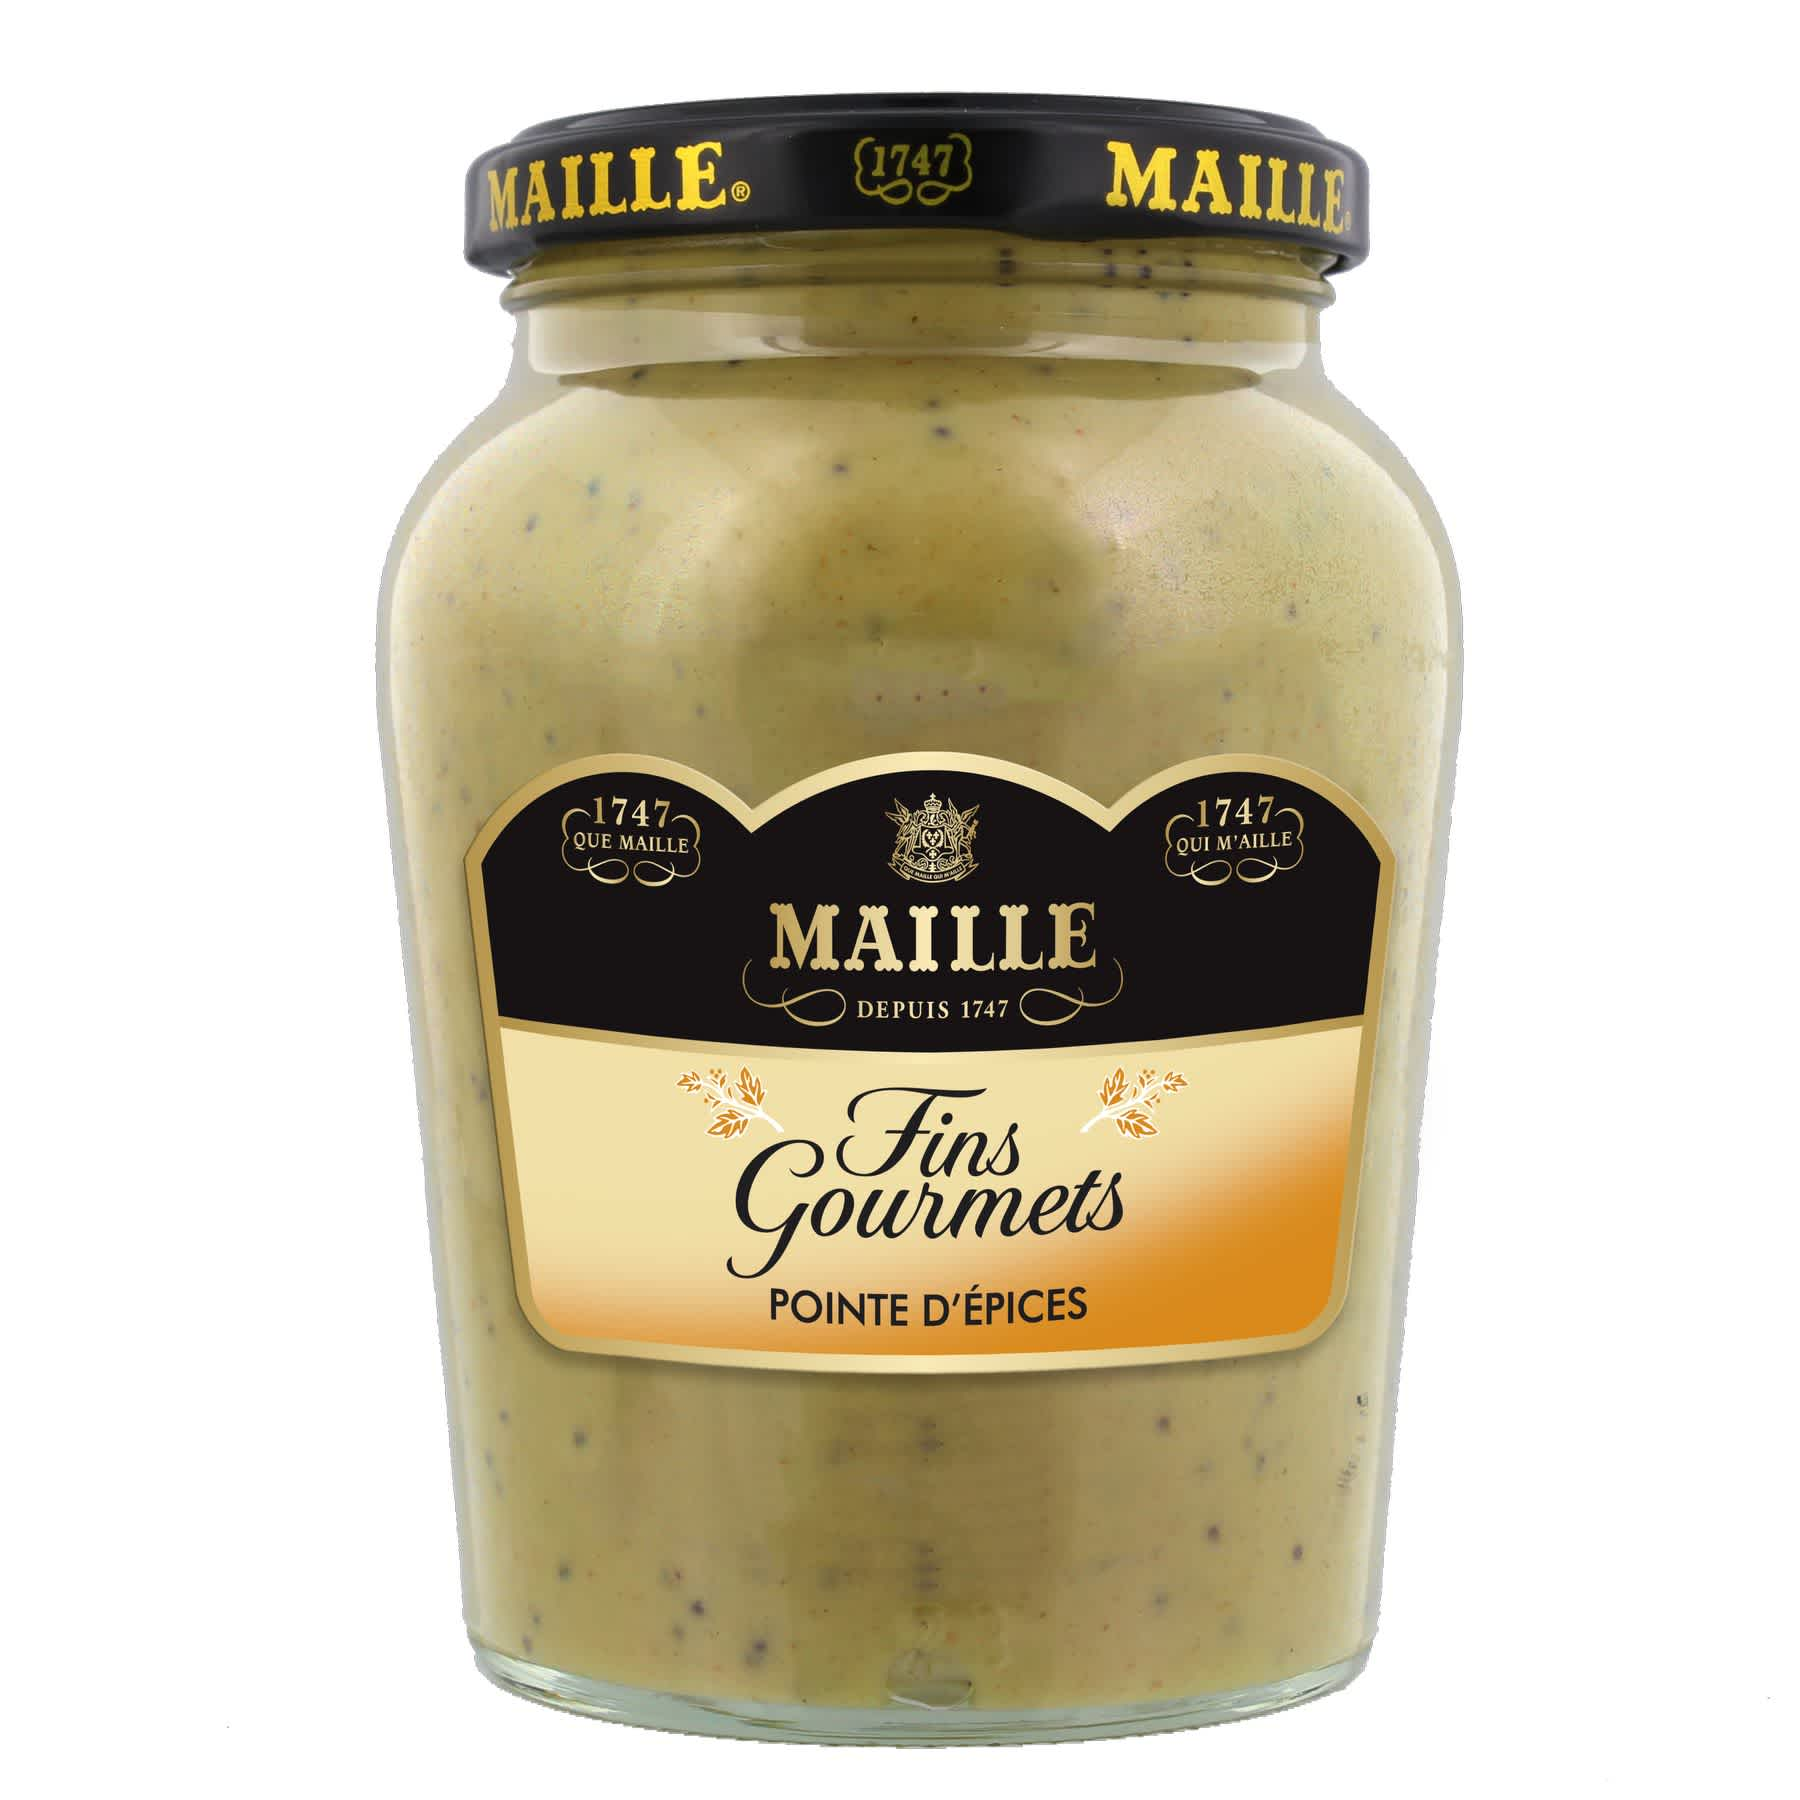 Maille Specialite a la Moutarde Fins Gourmets Pointe d Epices Bocal 340g, overview